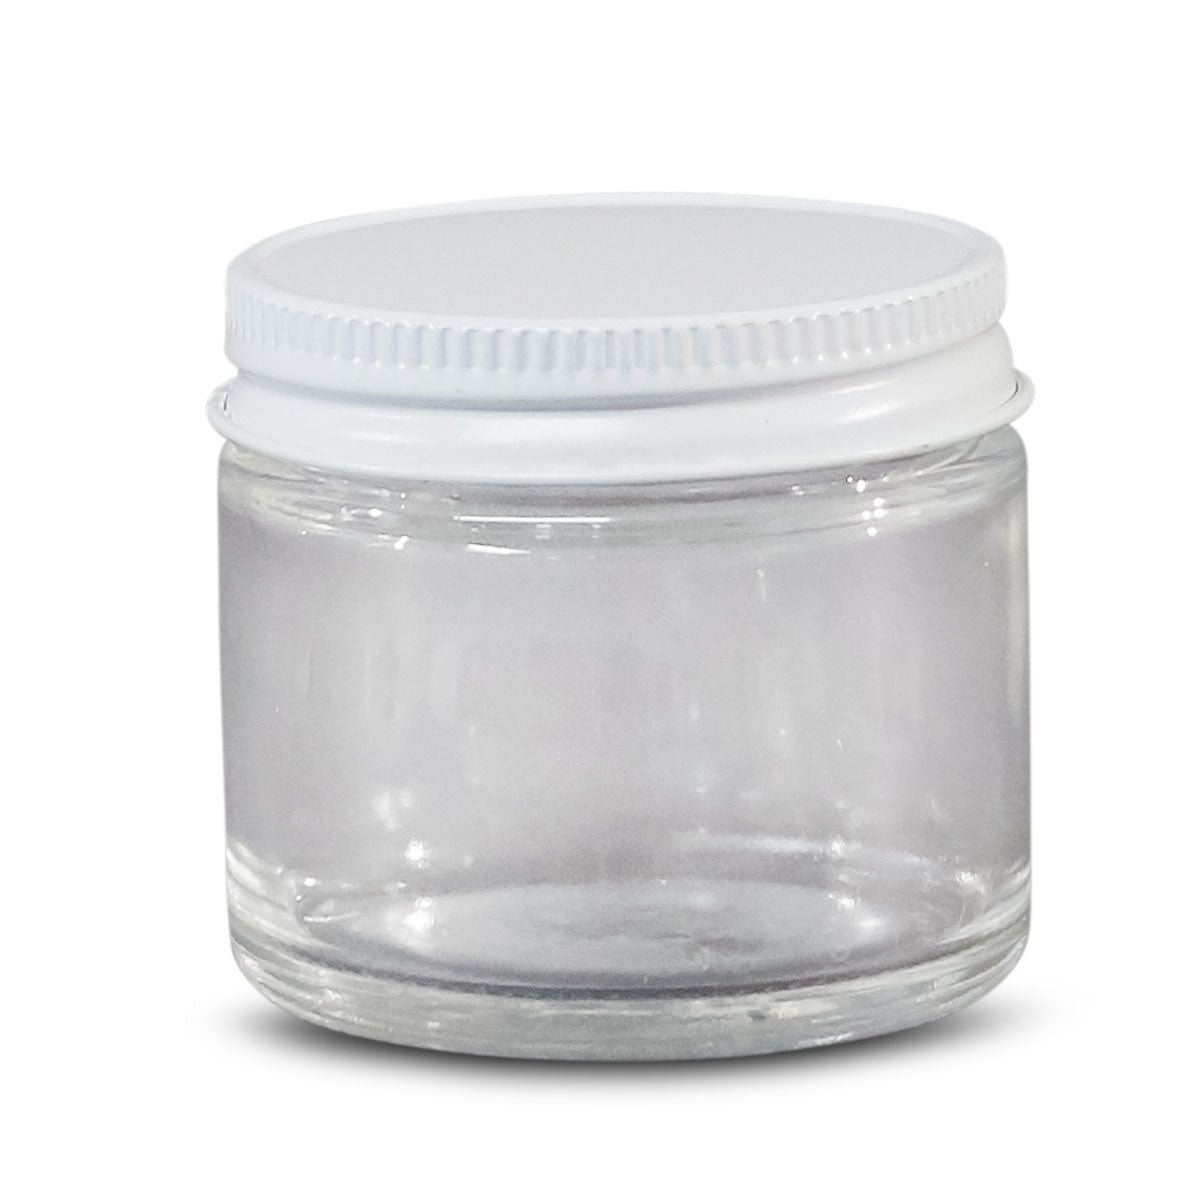 3 oz Round Cream Jar (24/case)